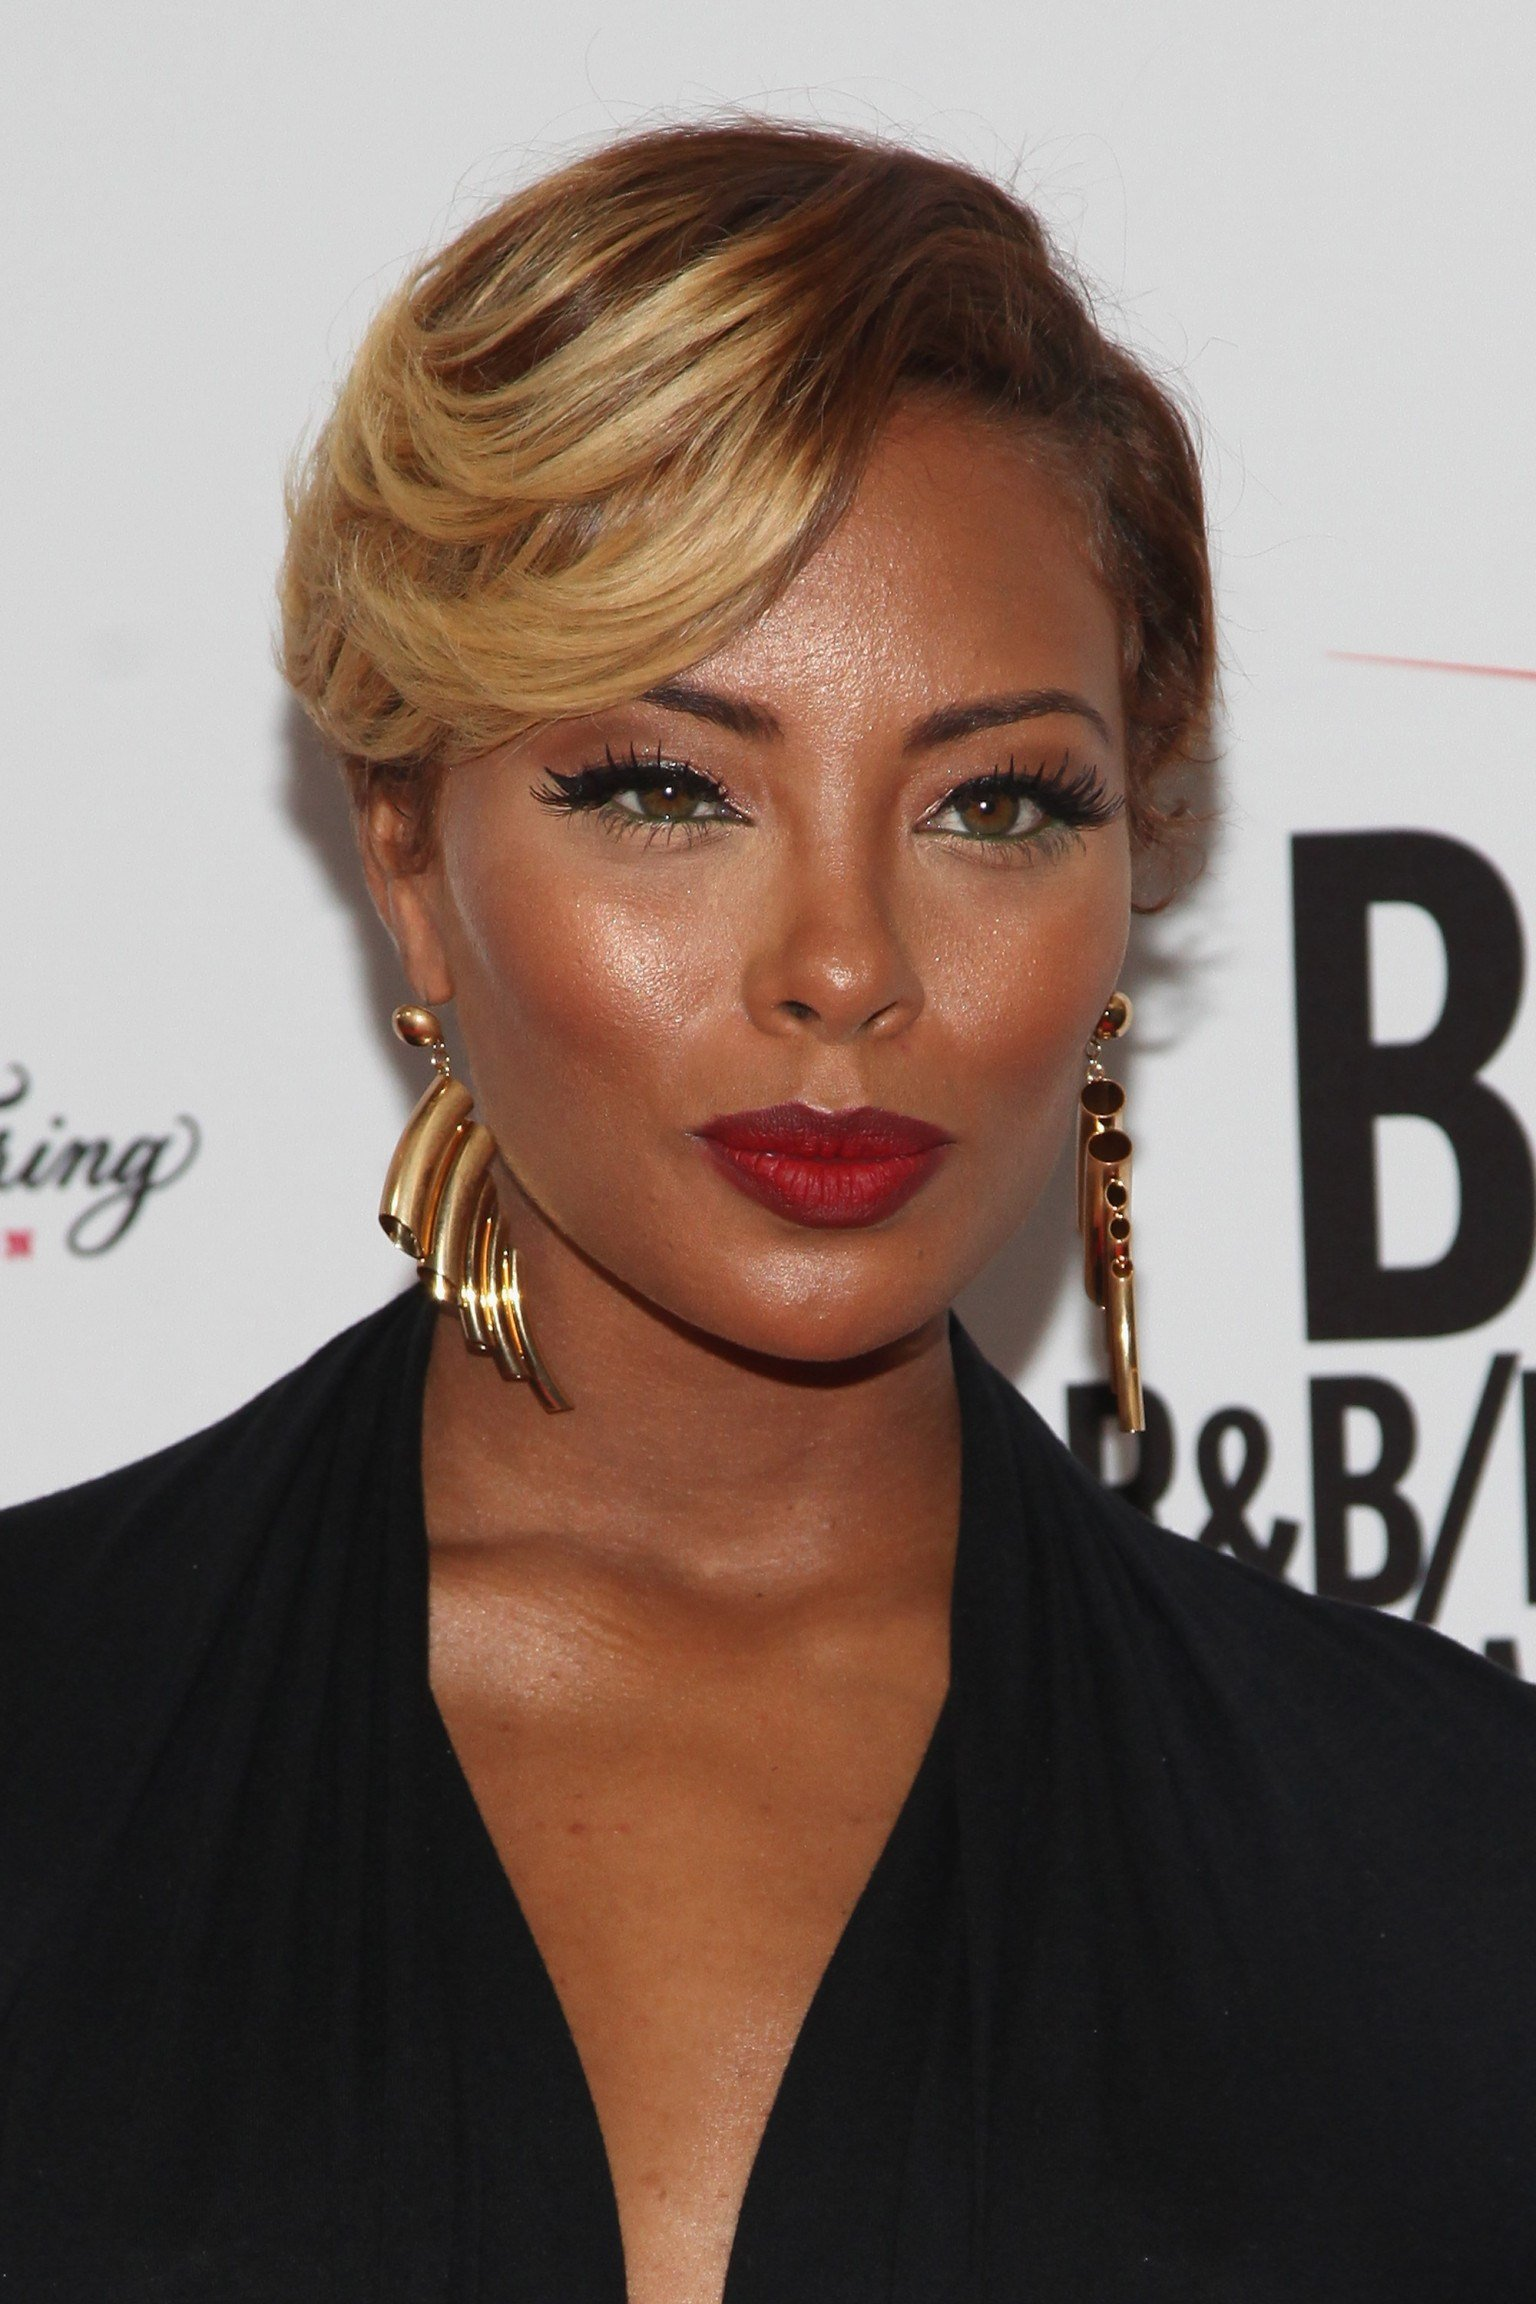 The Best Eva Marcille Expecting First Child Pictures